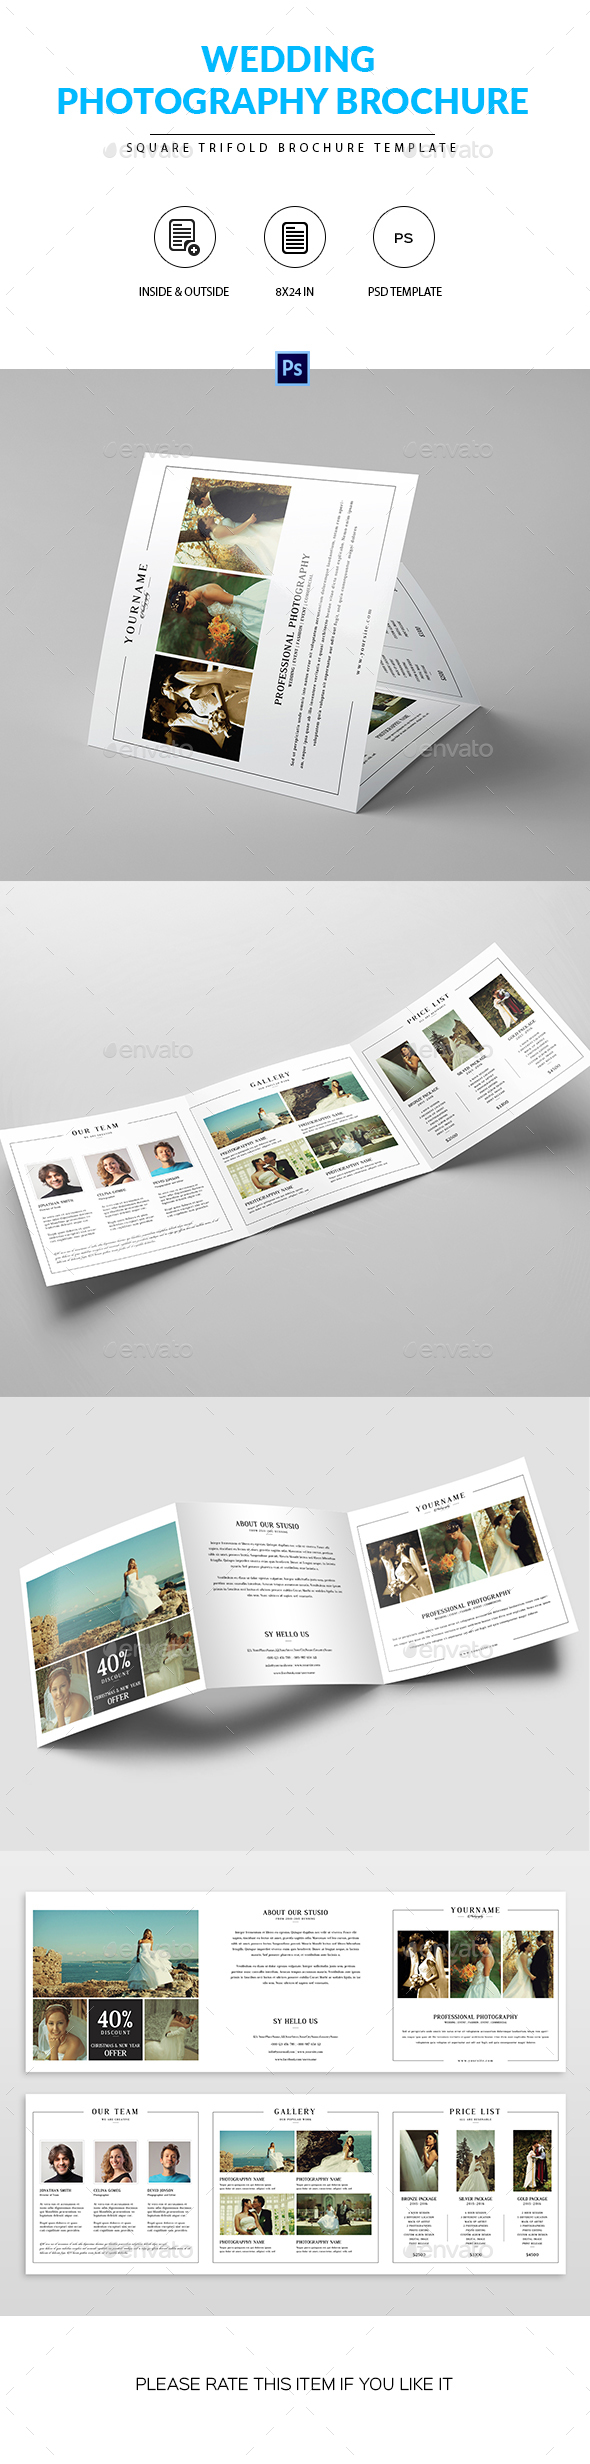 Square Trifold Brochure for Wedding Photographer - Portfolio Brochures